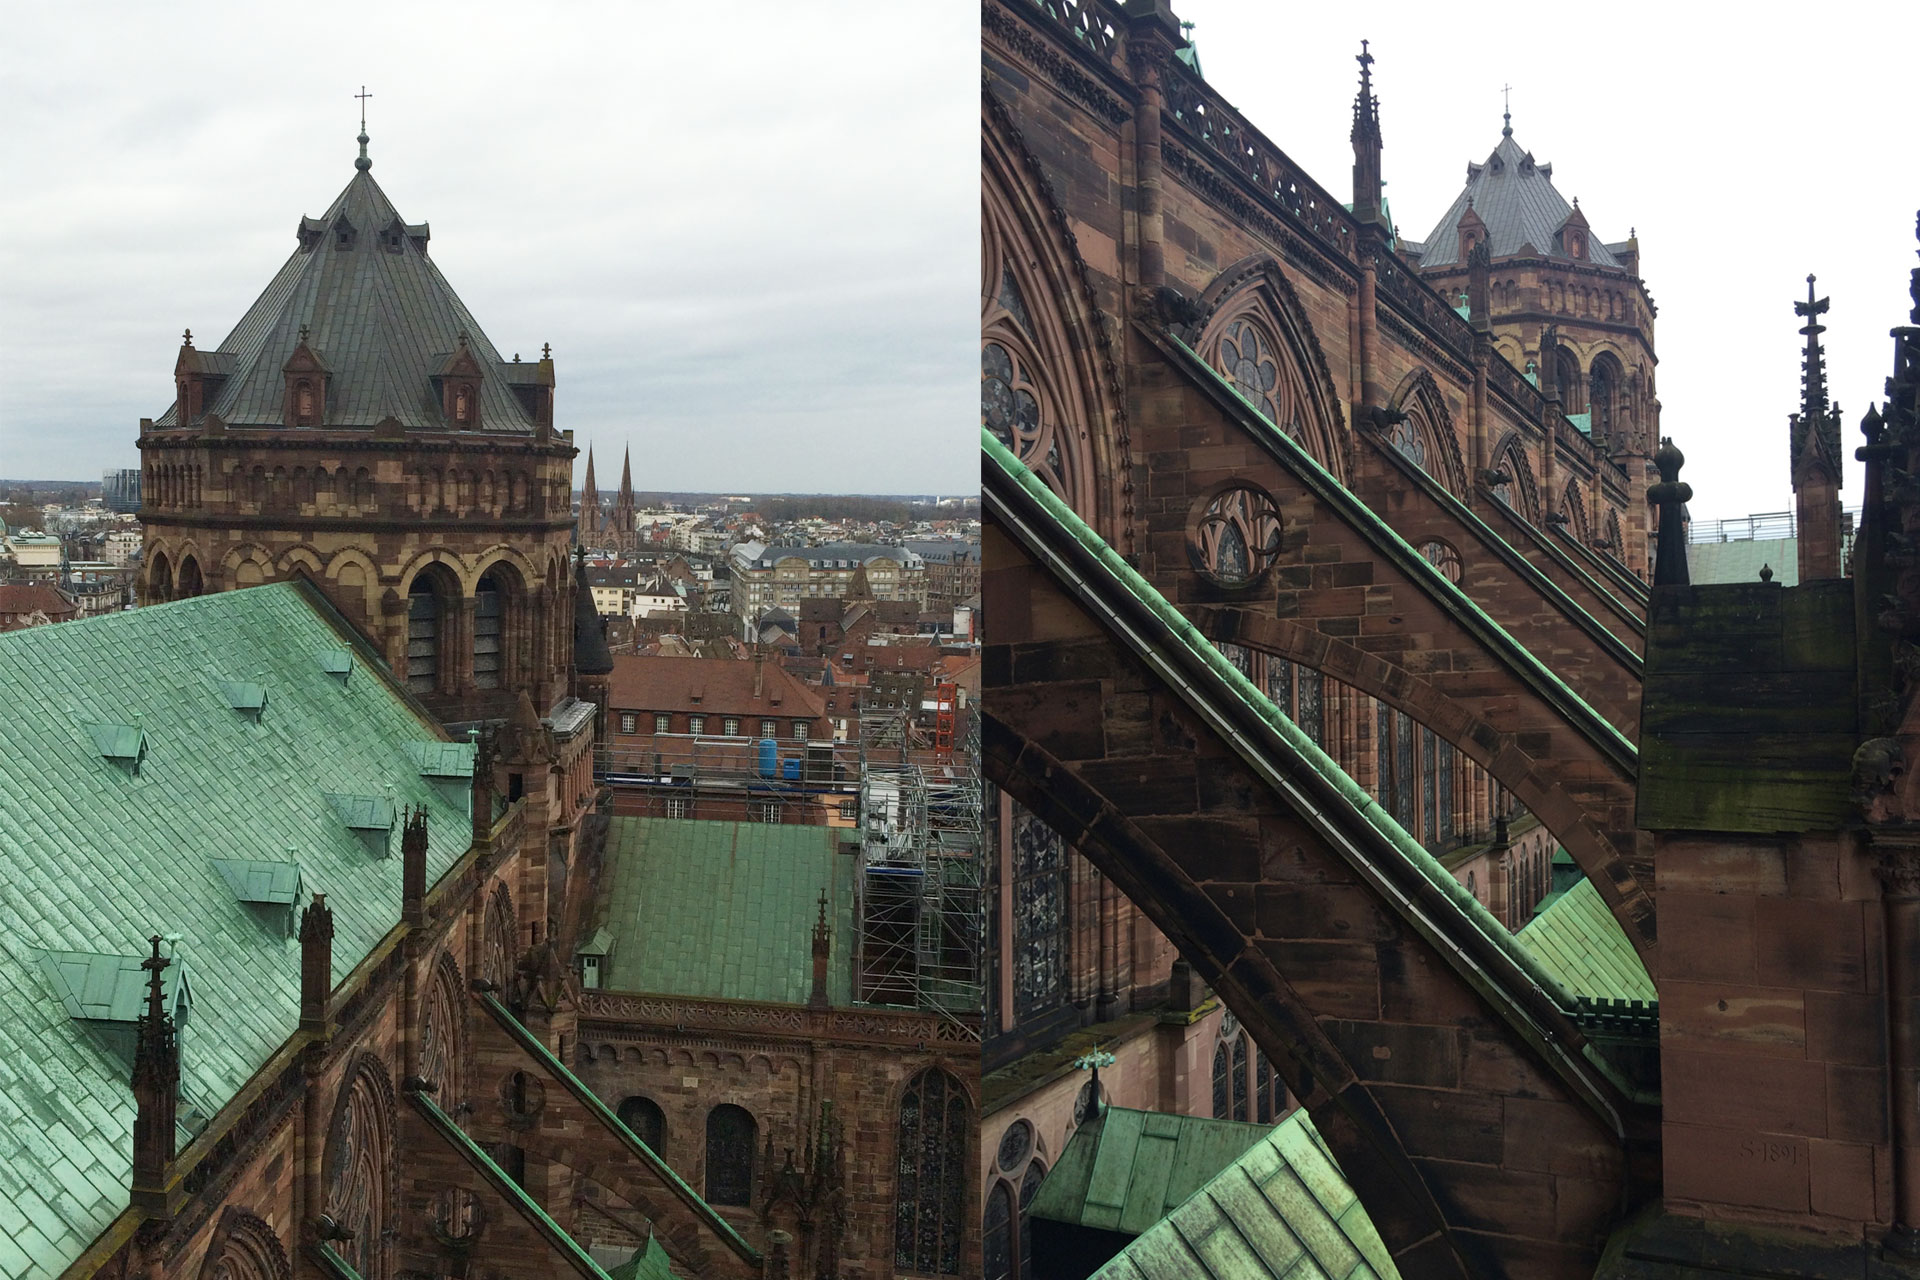 Marvel at the Flying Buttresses of the church while climbing up to the platform